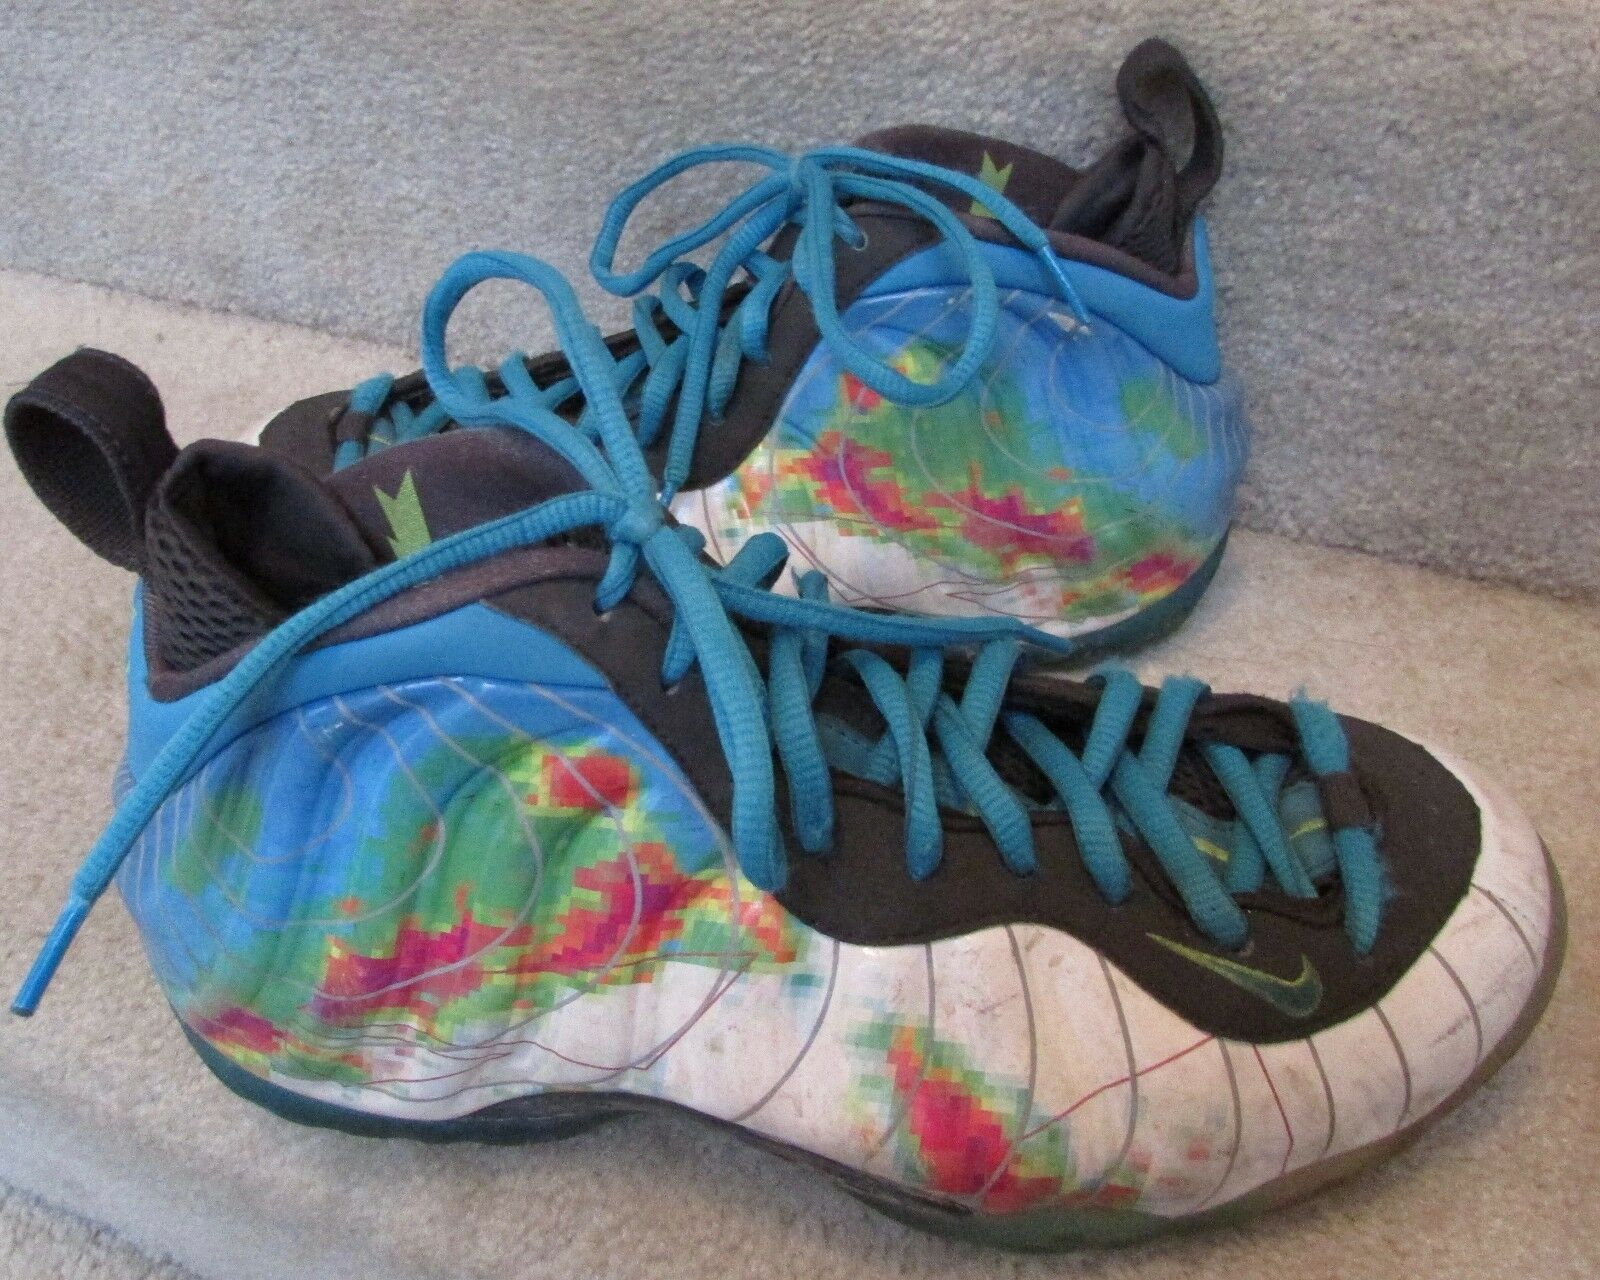 648d10e692 2013 NIke Foamposite Weatherman Sneakers Basketball shoes Size 7.5  575420-100. 32 New Nike Vapor Untouchable Pro Mens 8 -13 Black Football  Cleats 833385 002